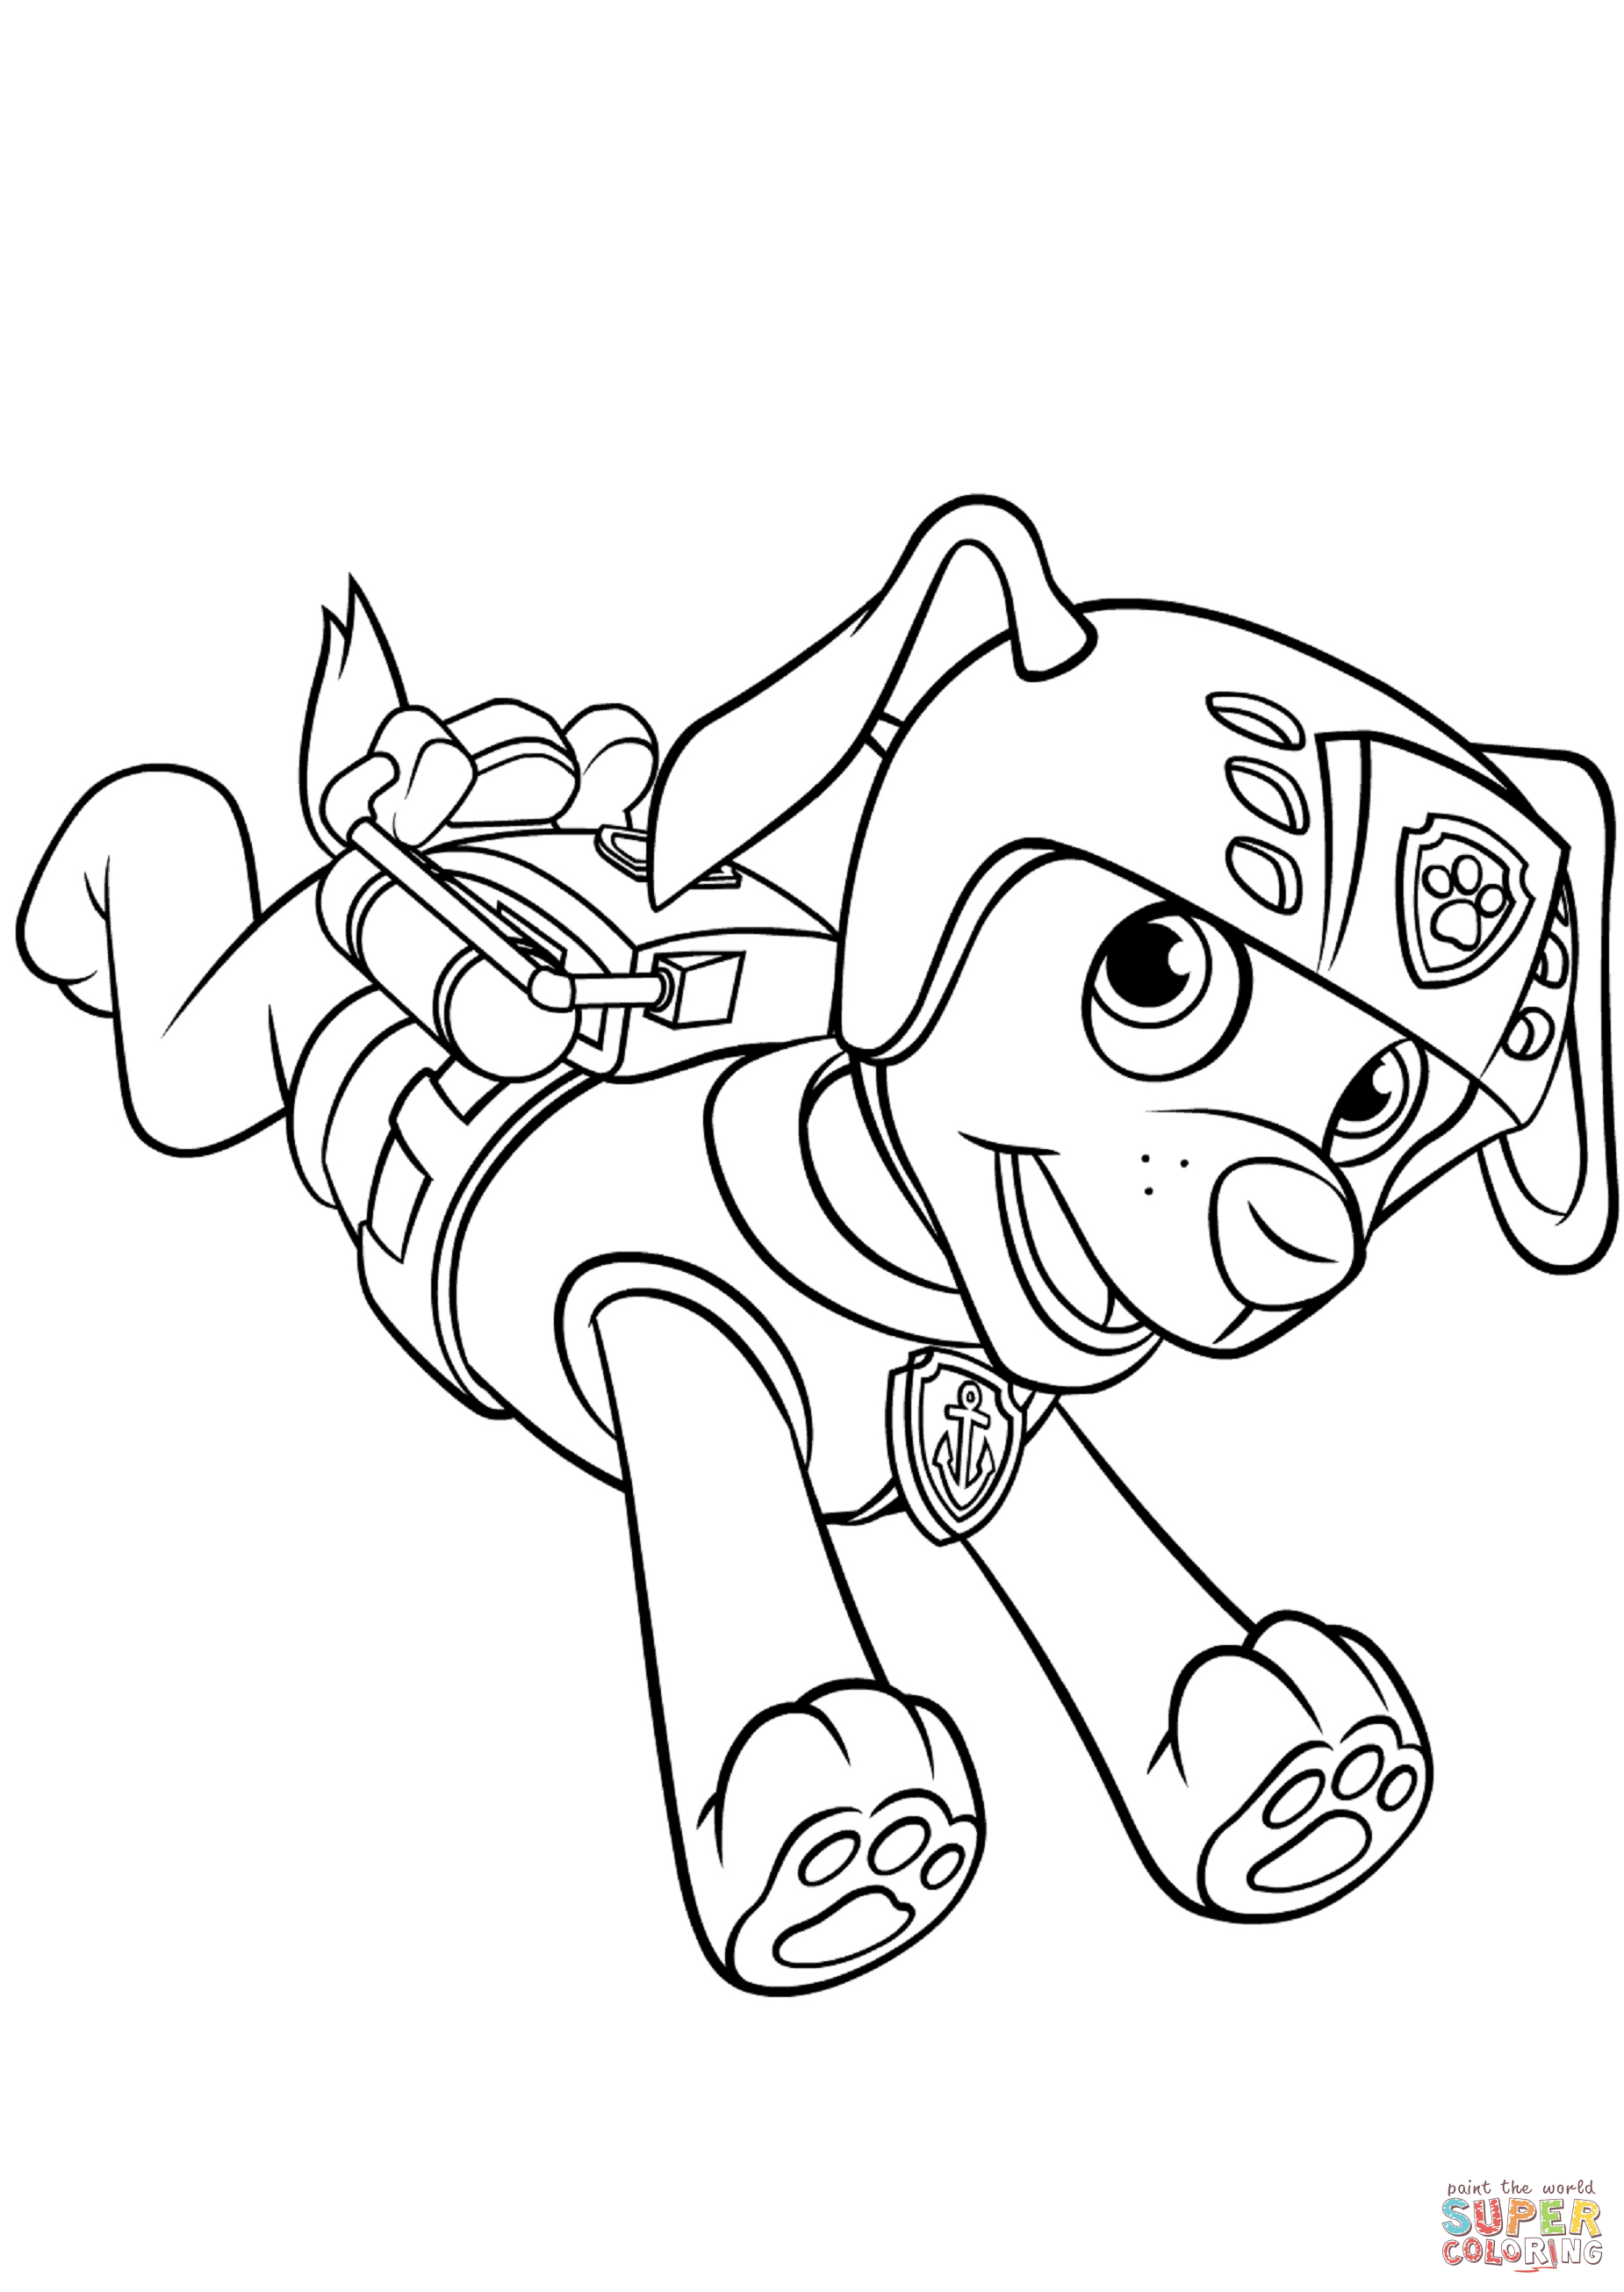 Pencil Coloring Pages Printable At Getdrawings Com Free